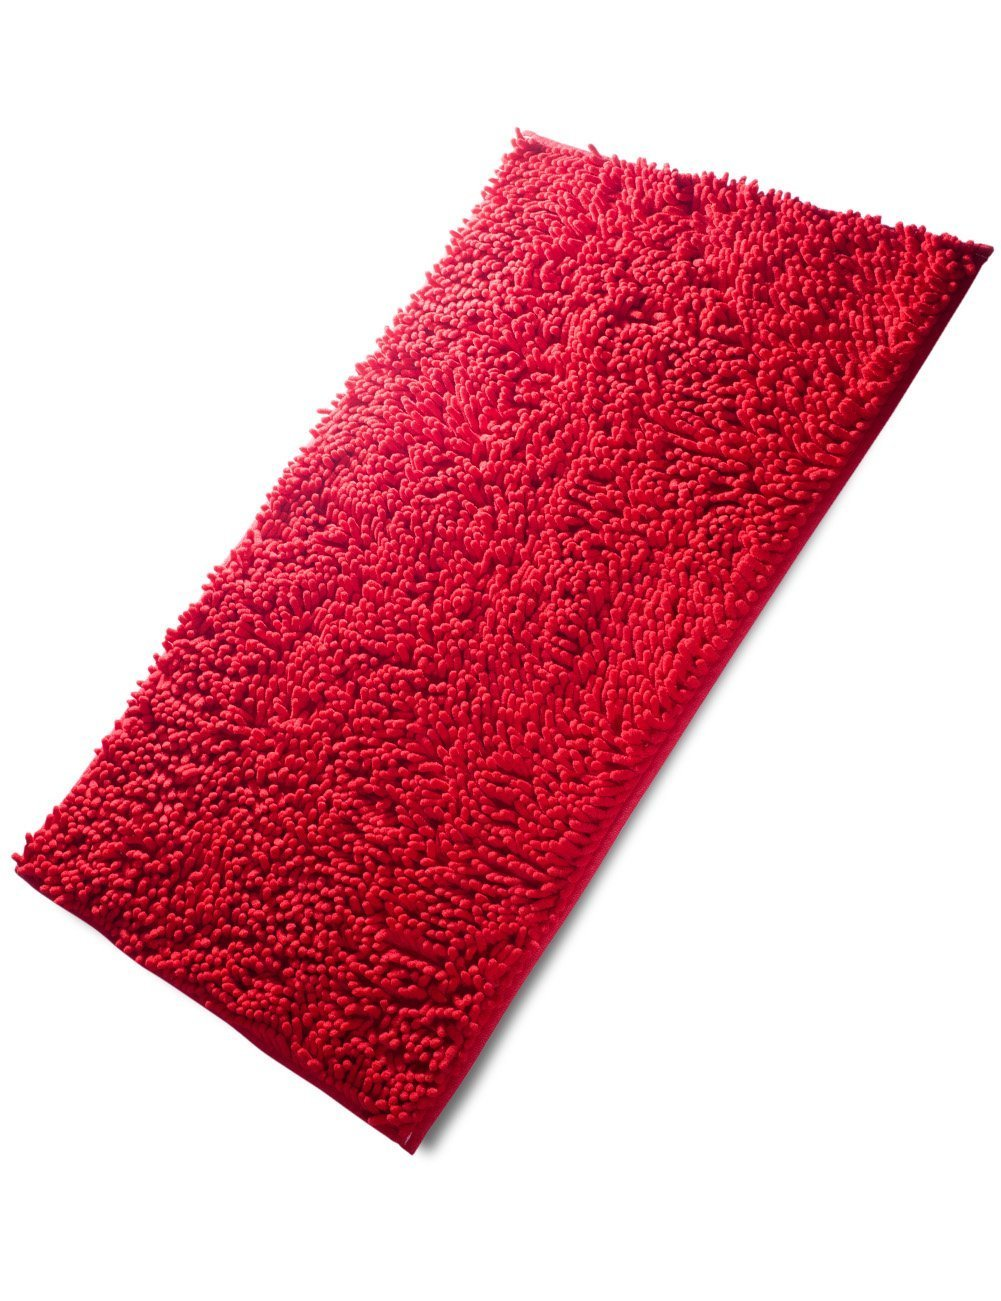 "Fadesun Super Soft Absorbent Non-slip Microfiber Chenille Carpet/Doormat/Bath Mat/Rug Carpet/Floor Rug for Bedroom,Sitting Room,Corridor,Kitchen,Bathroom,and Car Seats,Shower,20""x32"",Red"